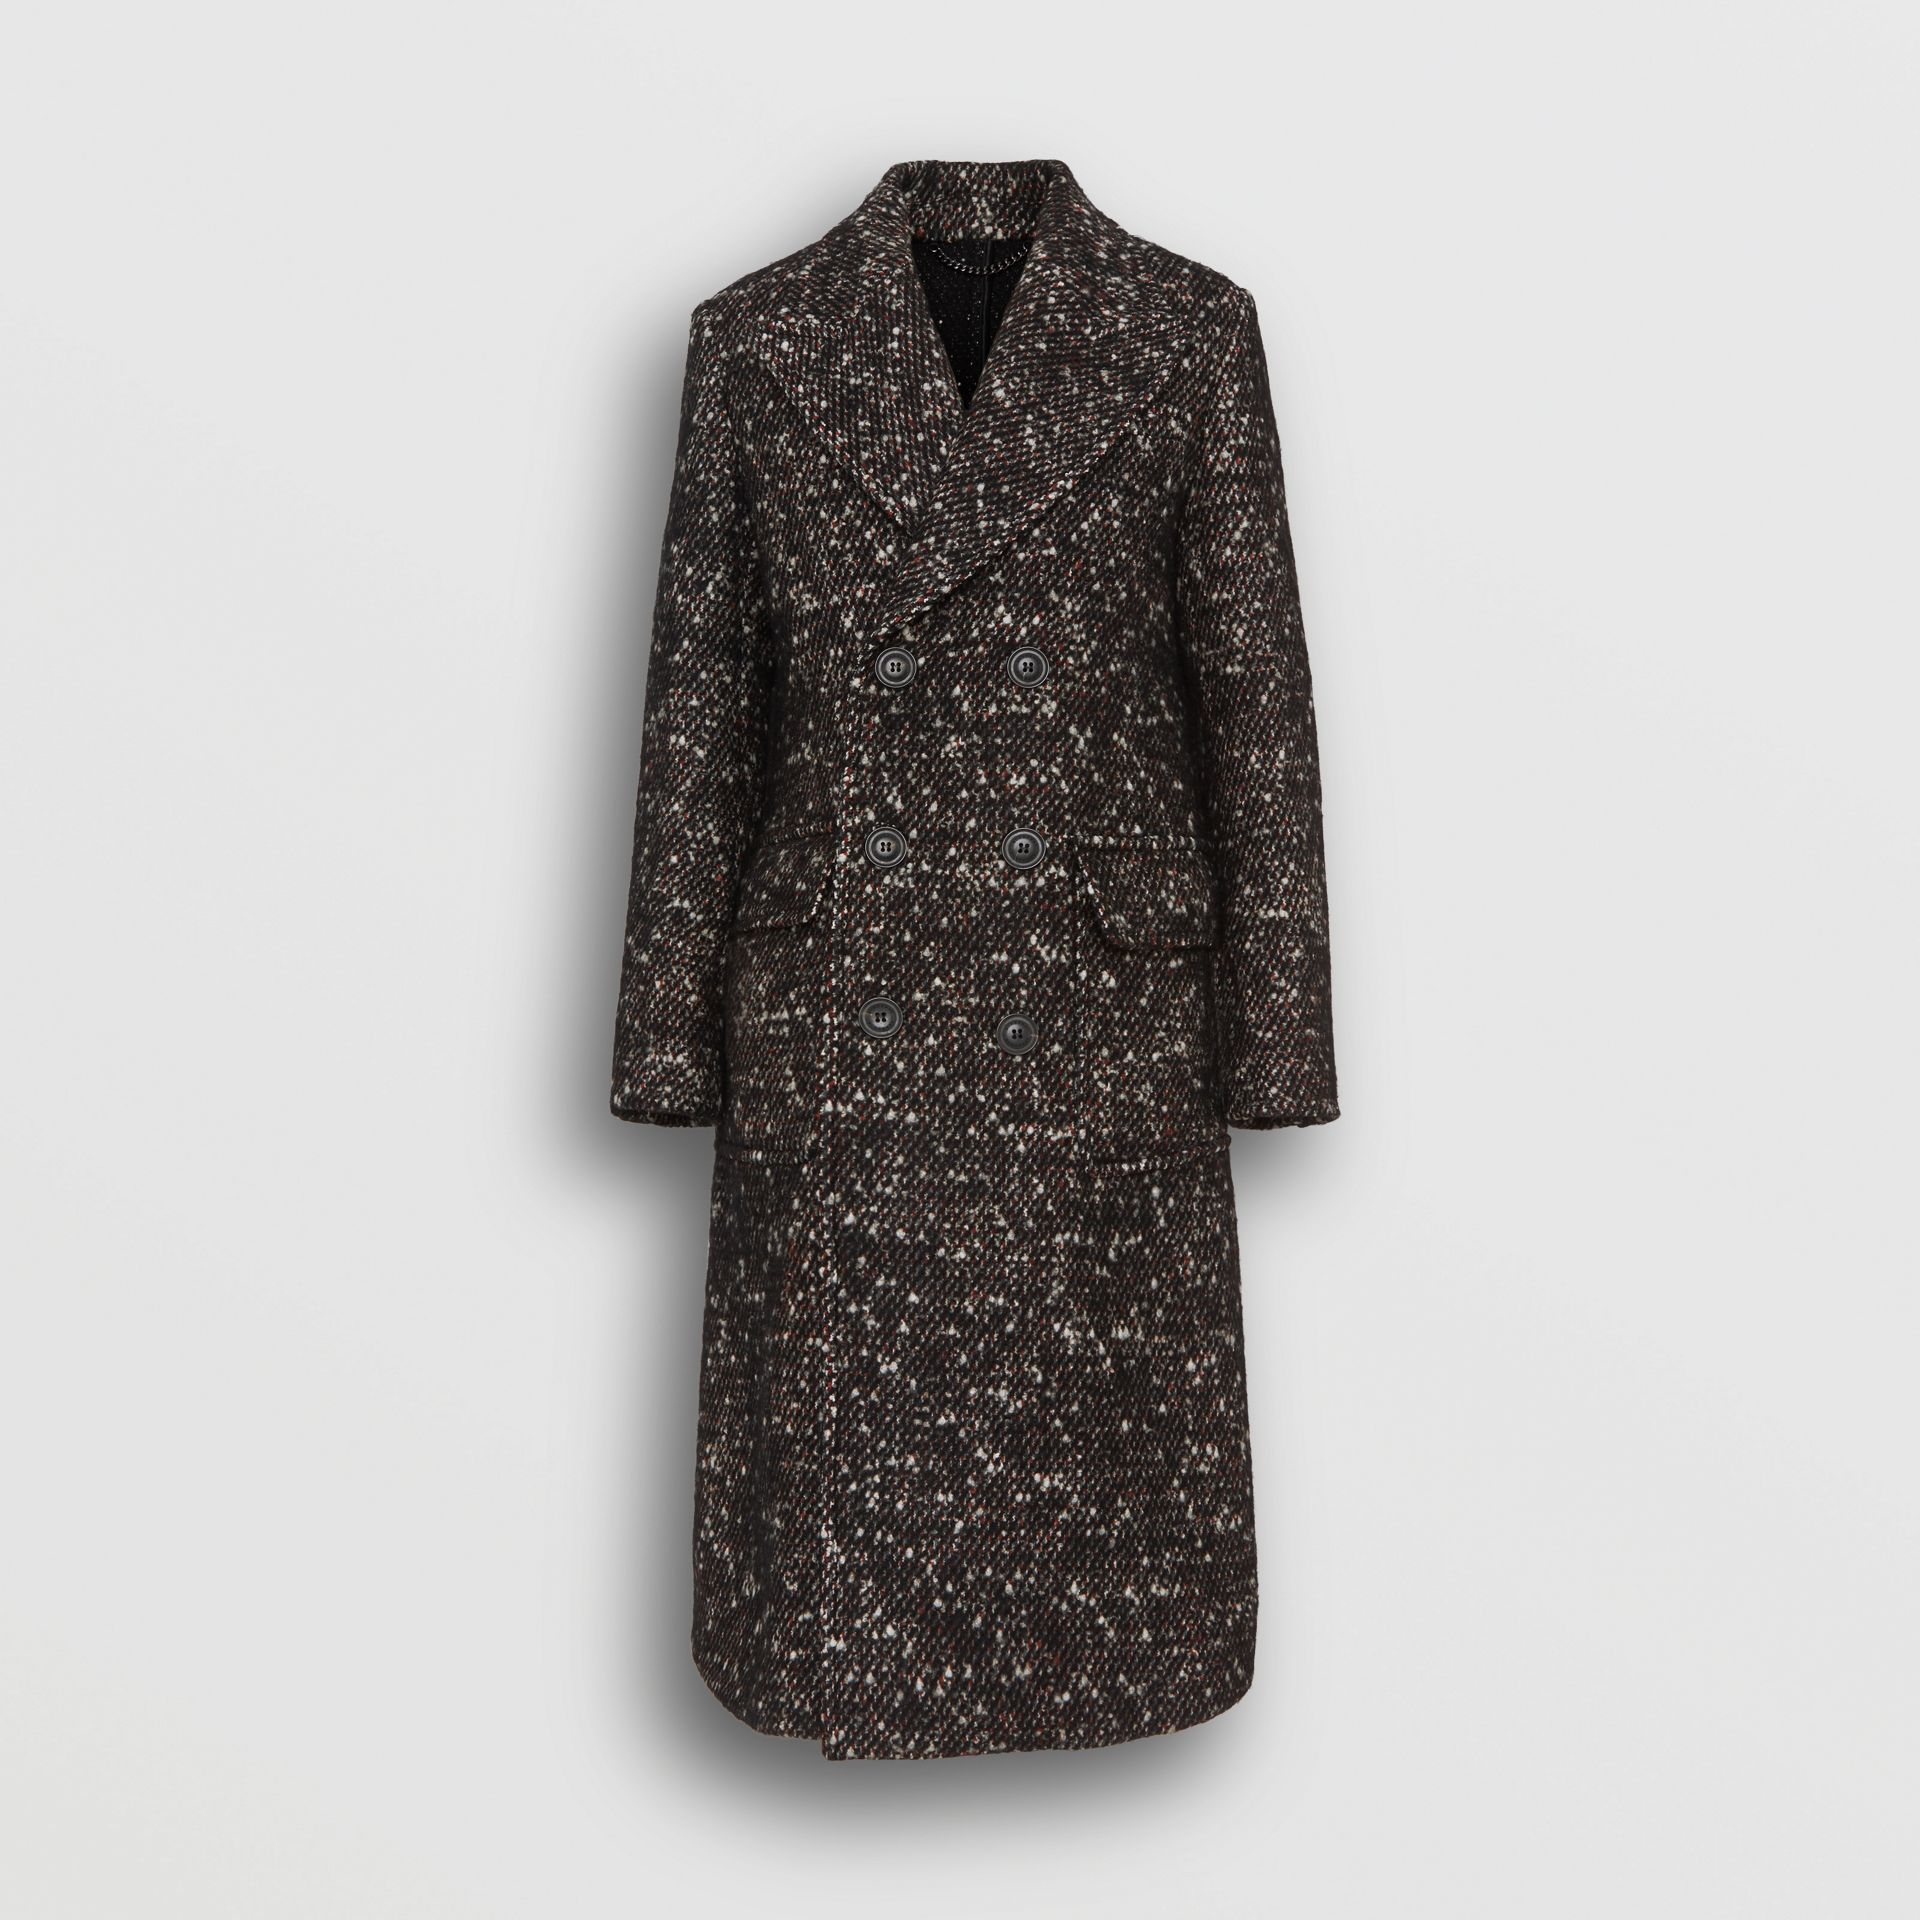 Wool Mohair Blend Tweed Tailored Coat in Black - Men | Burberry United States - gallery image 3